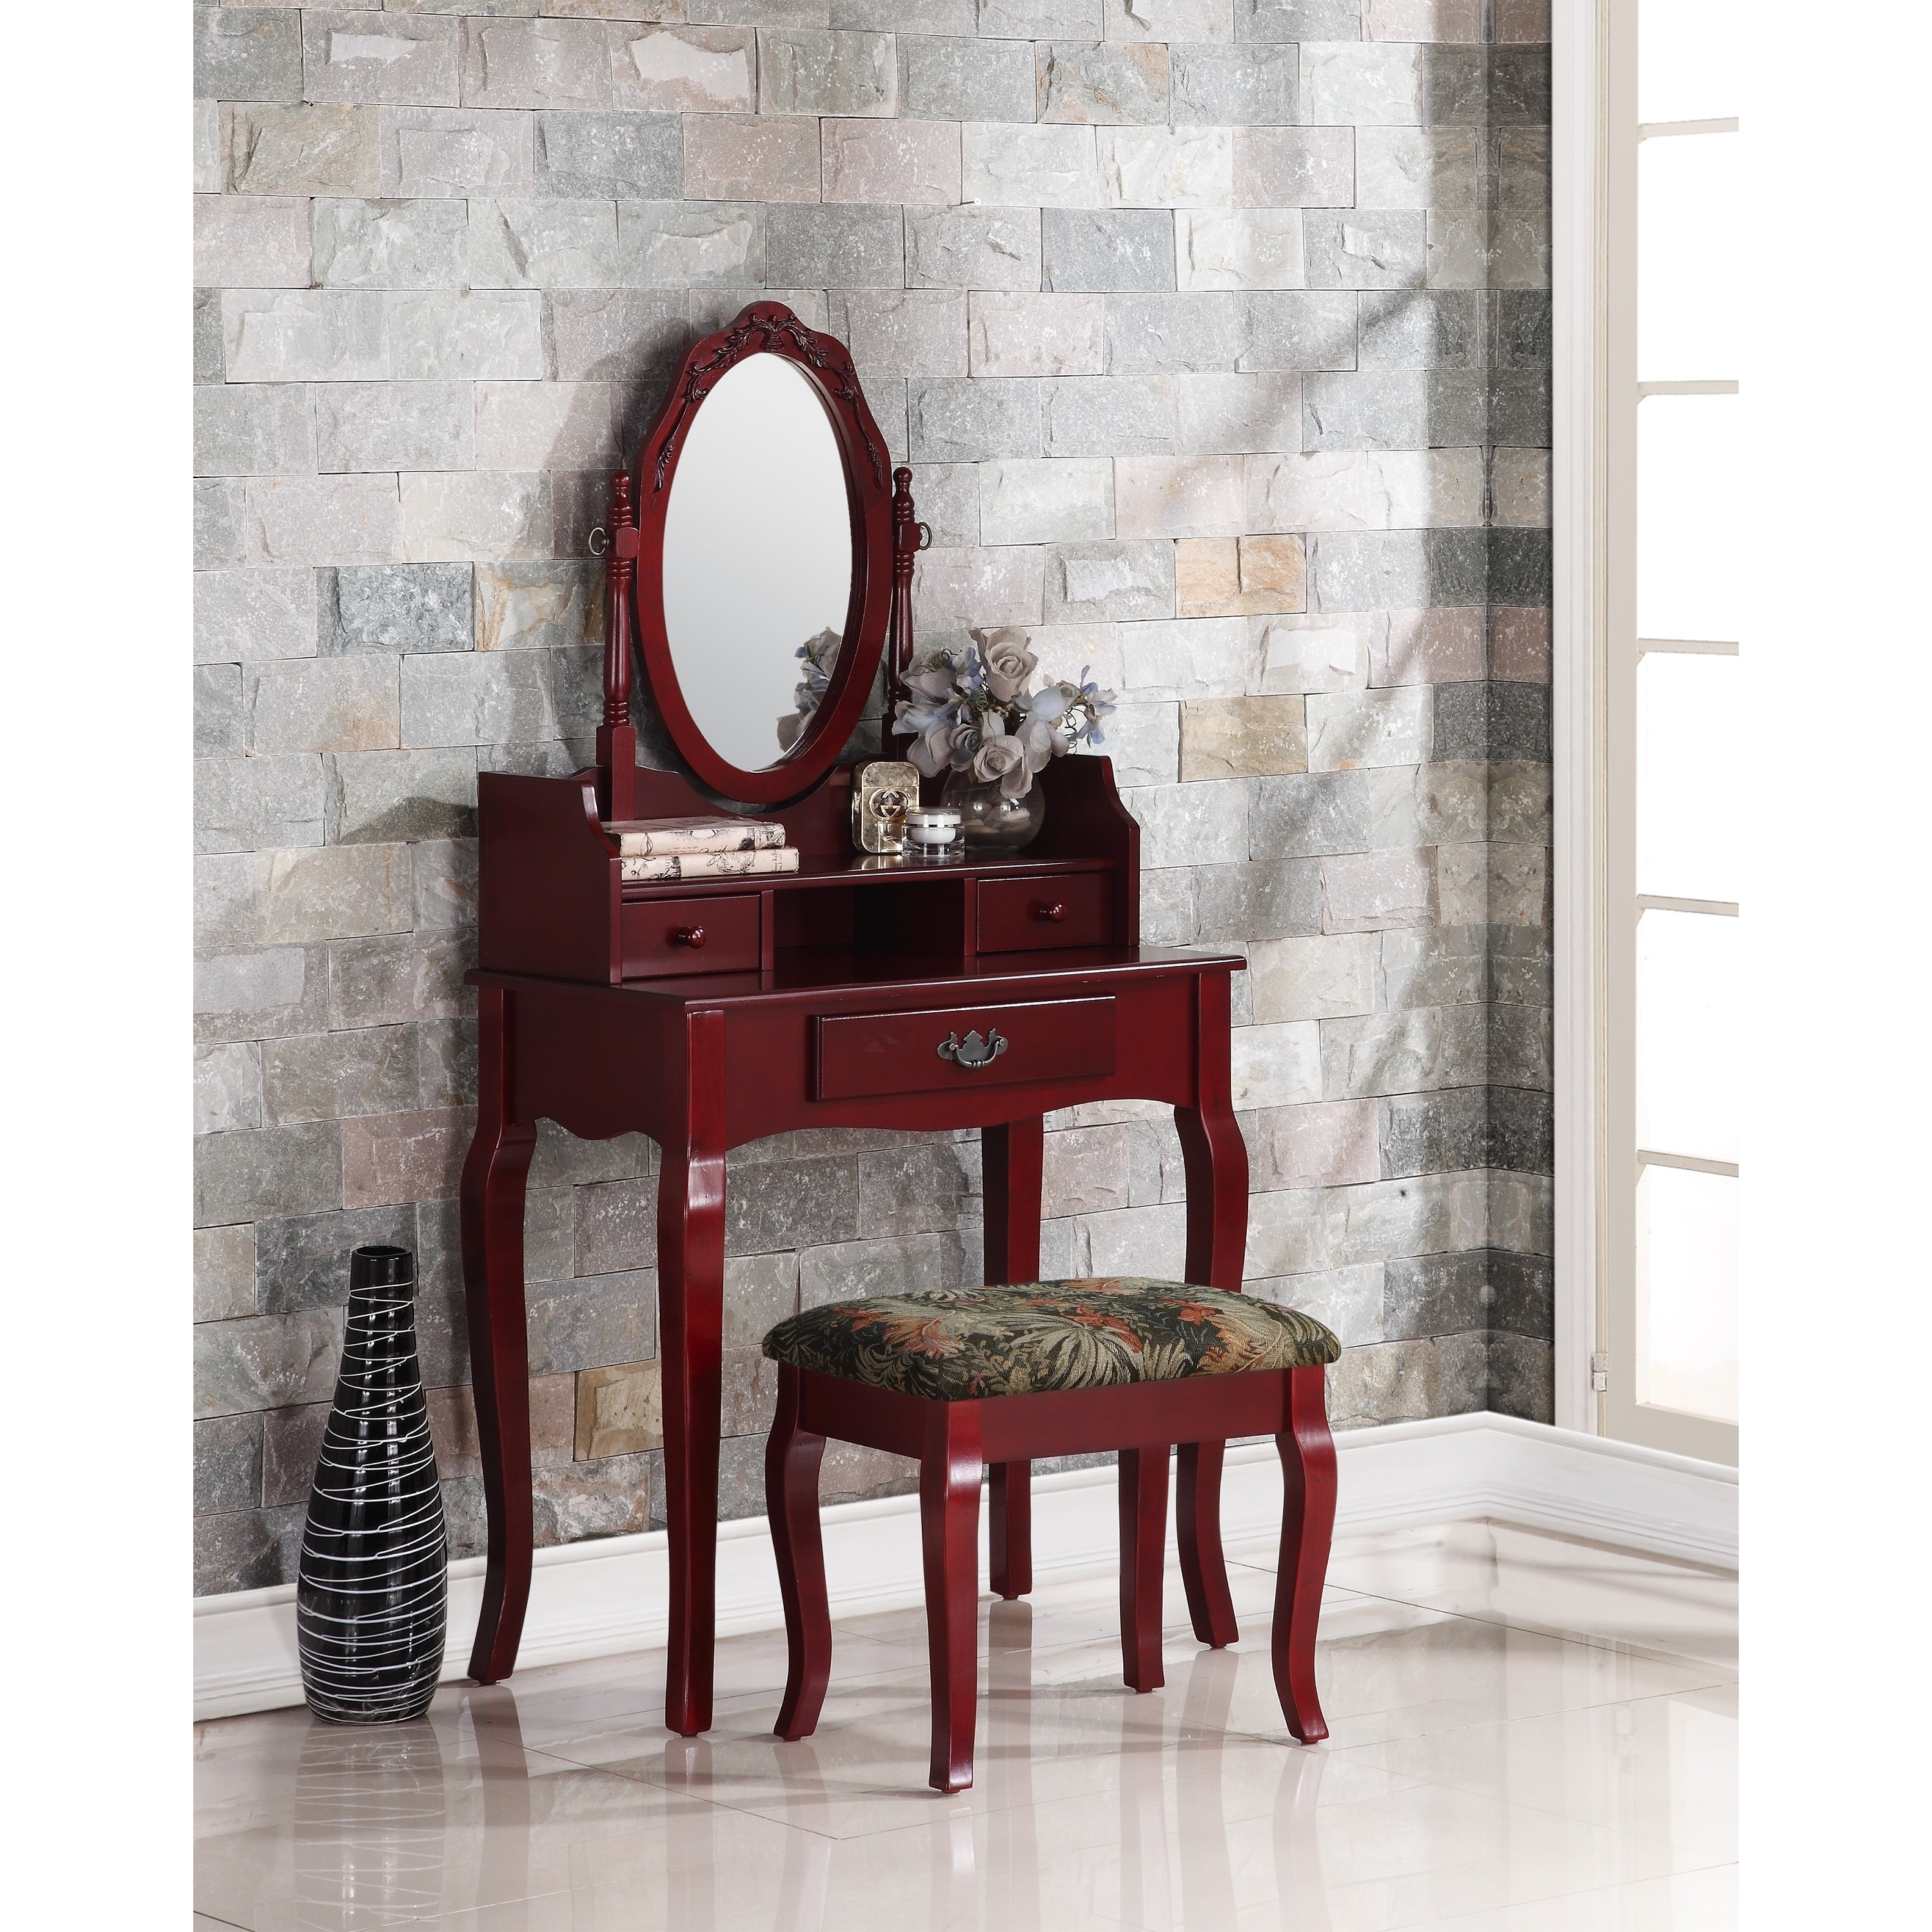 Fabulous Ribbon Wood Cherry Makeup Vanity Table And Stool Set Squirreltailoven Fun Painted Chair Ideas Images Squirreltailovenorg